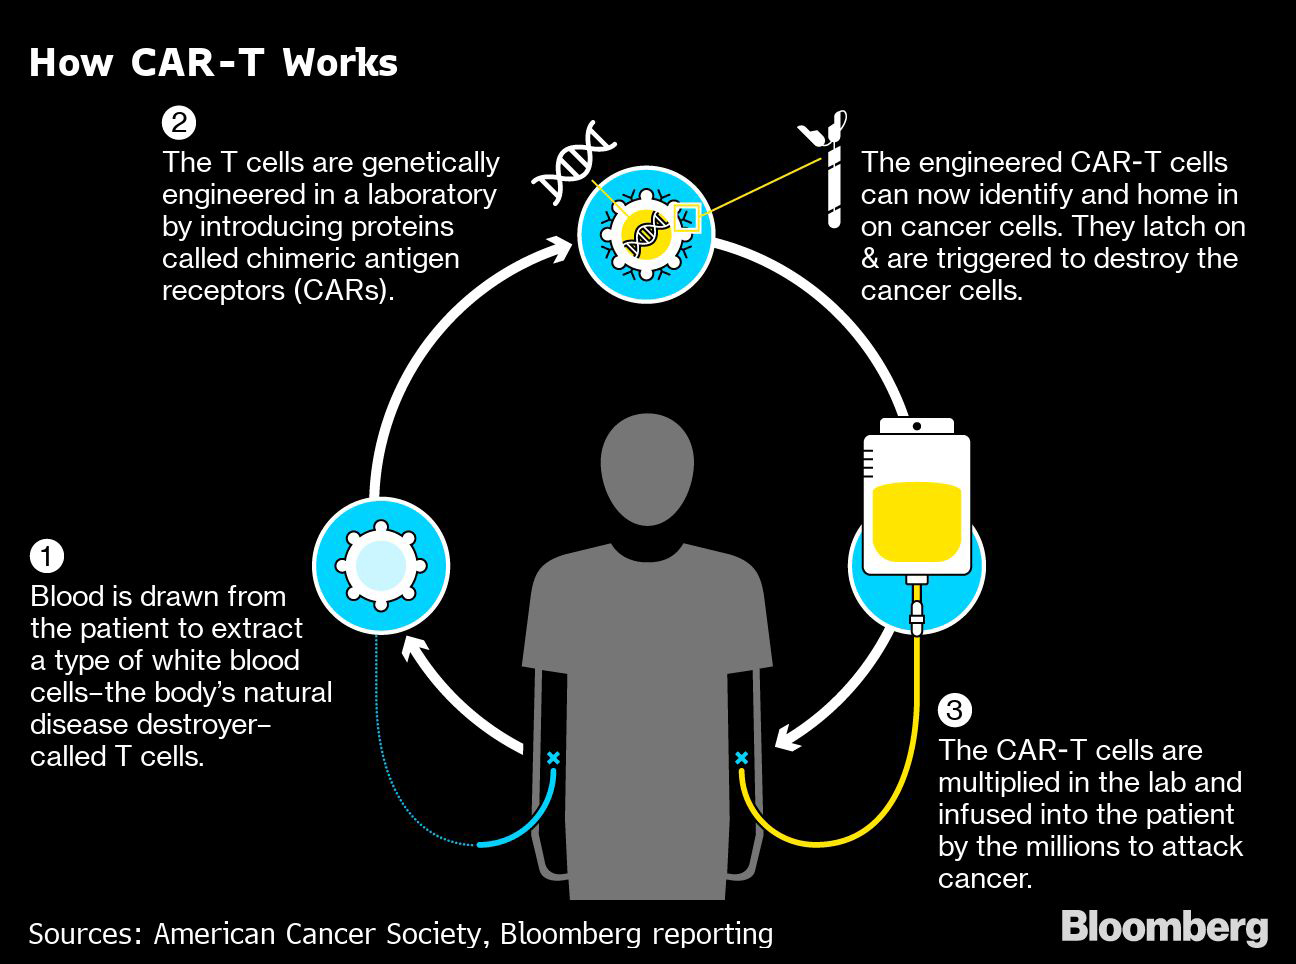 How CAR-T Works